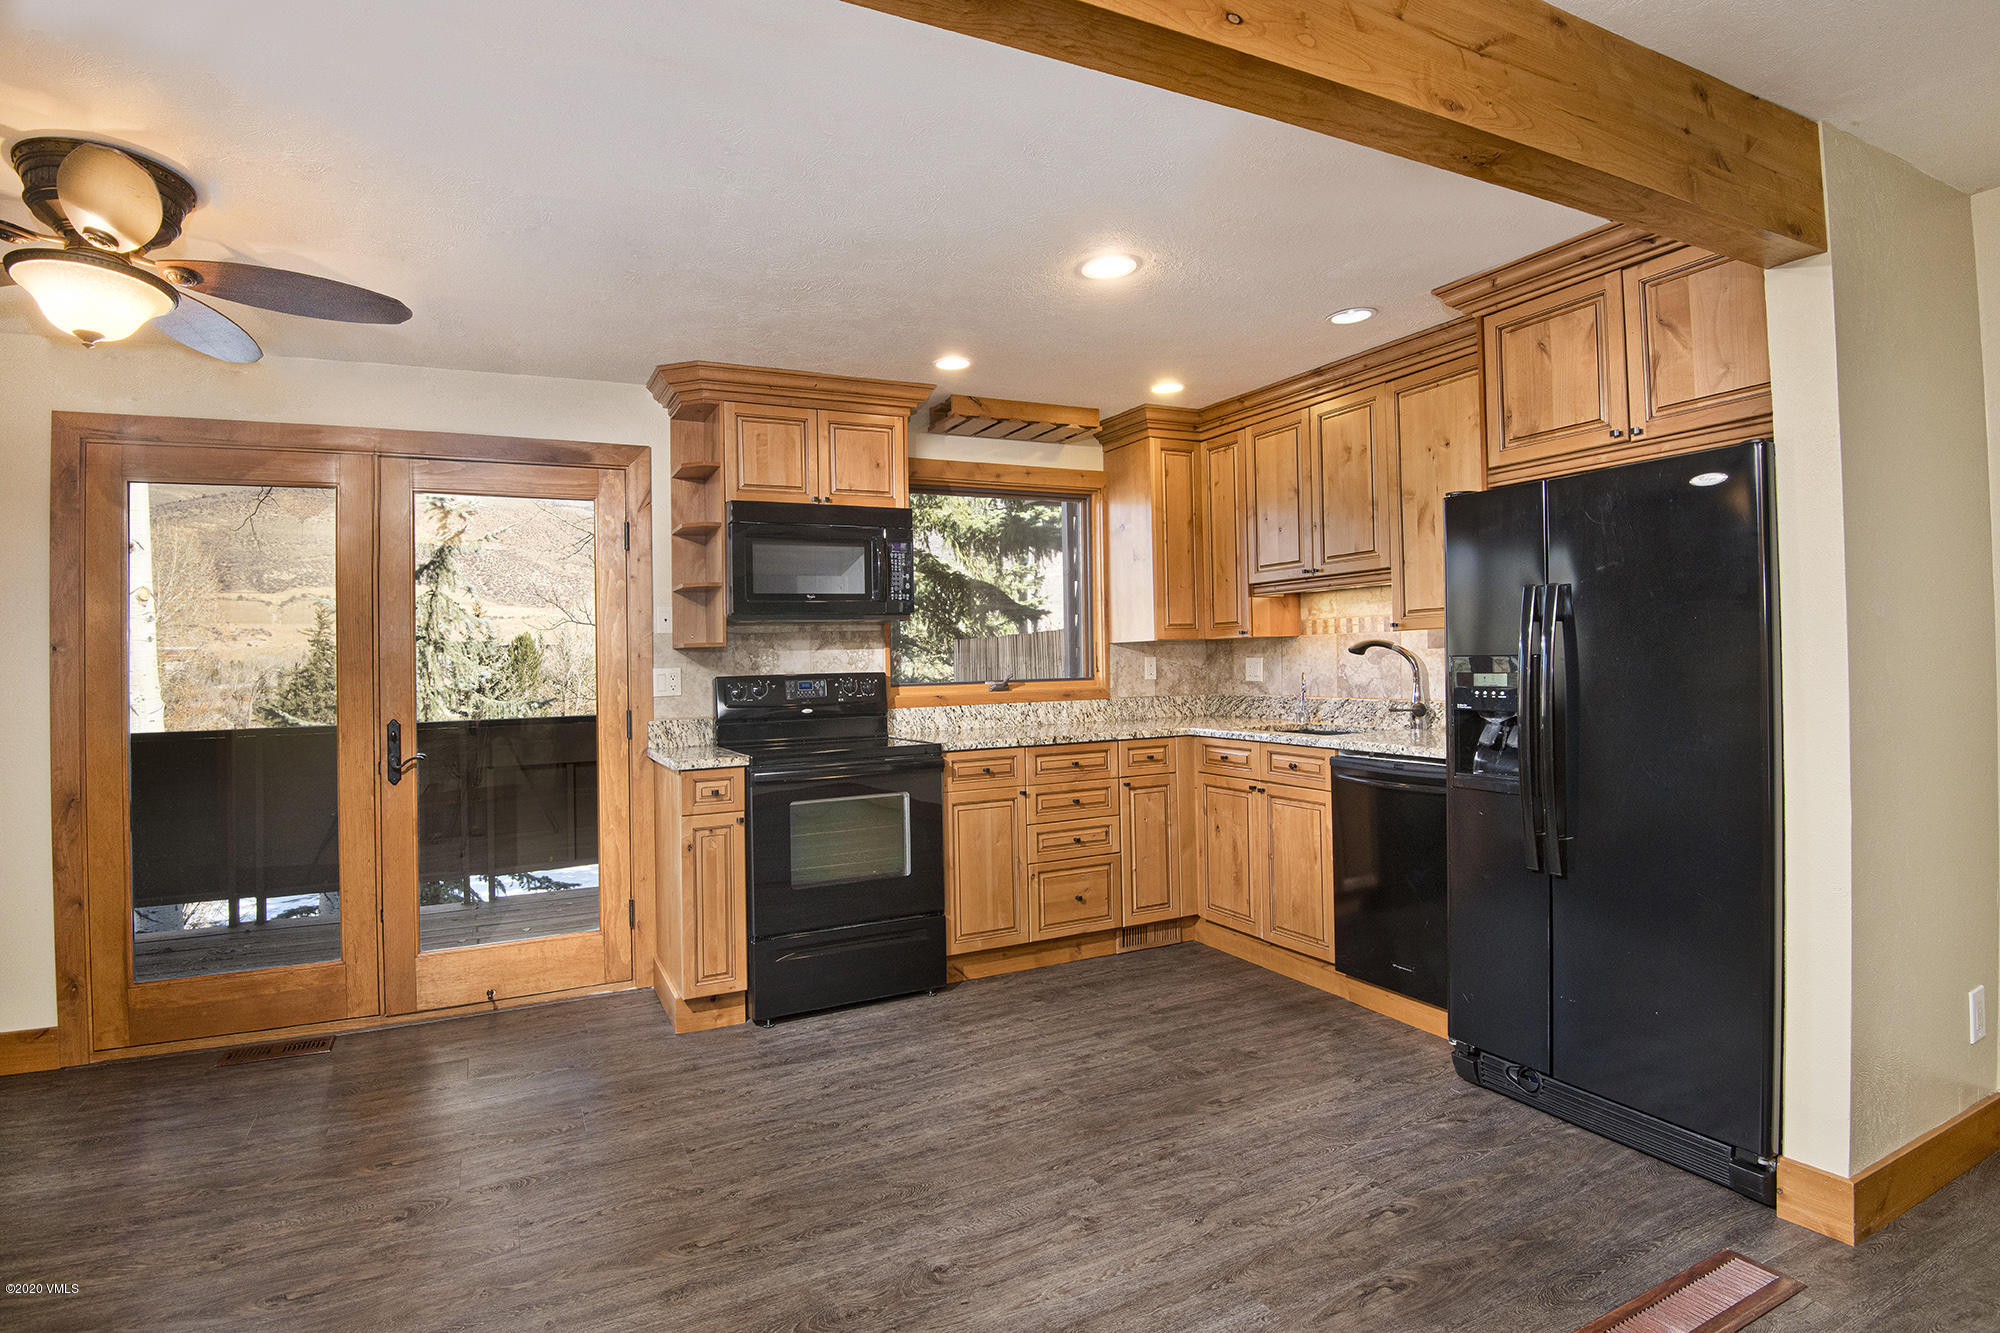 This is a terrific, upgraded property along the golf course in Eagle Vail.  It offers a   a very user friendly floor plan, reasonable dues and taxes.Enjoy the amenities of Eagle Vail: golf, pool,beach and pavillion. There is a skier shuttle and a short walk to the bus stop.